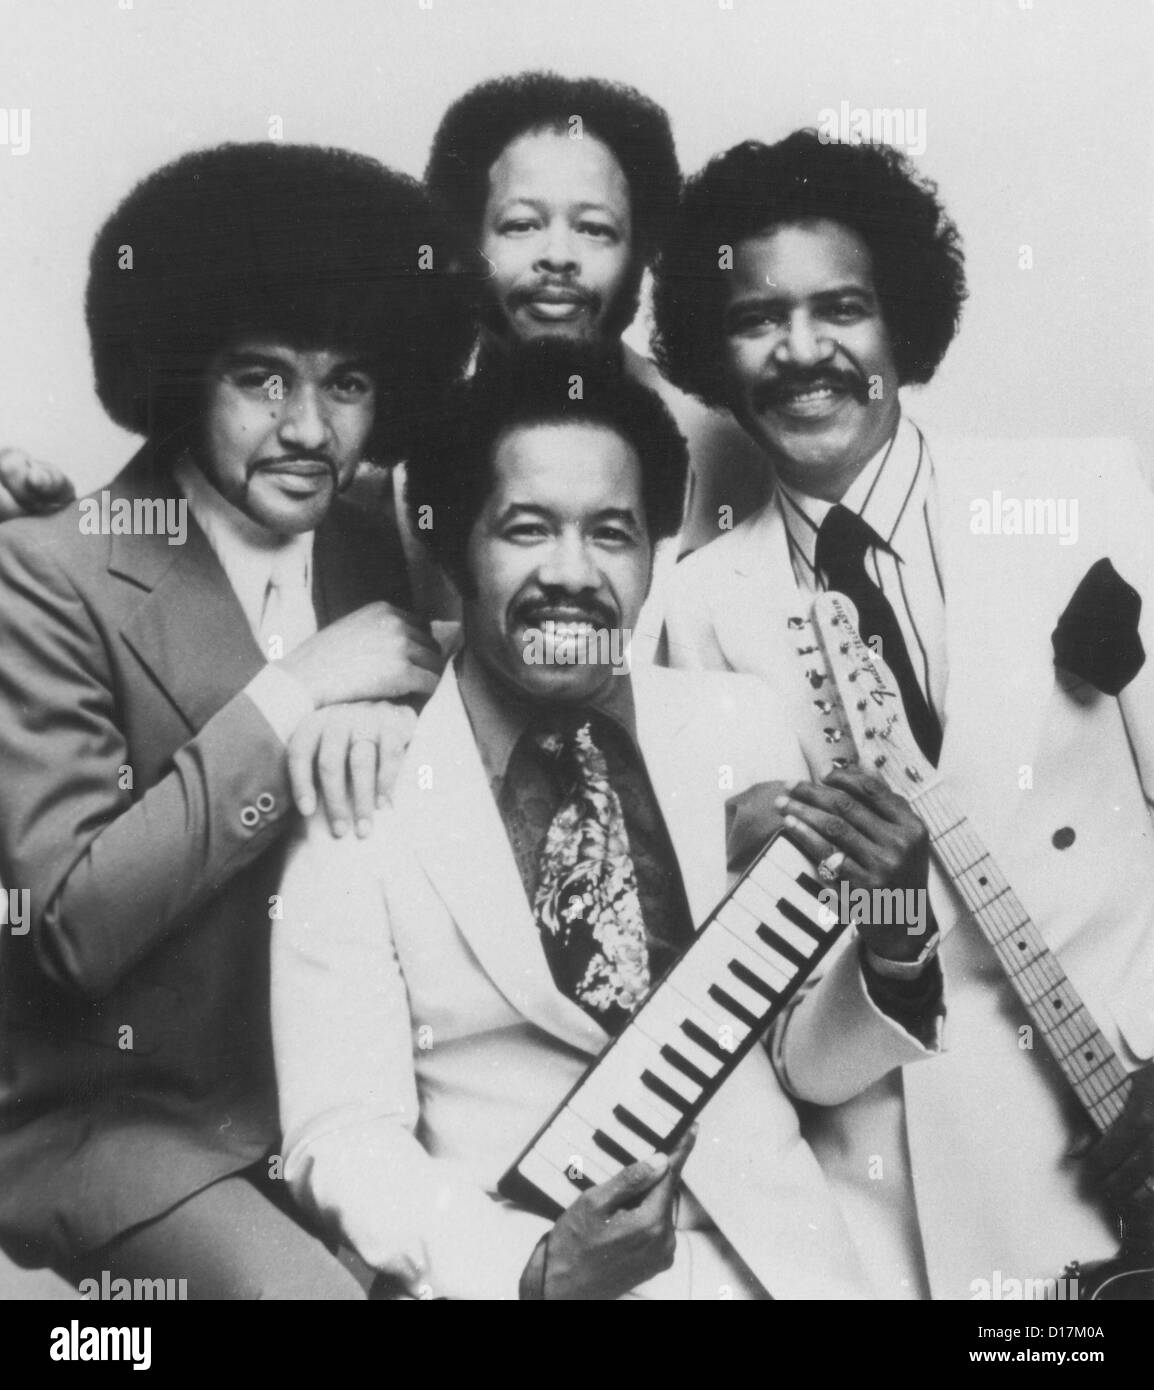 CHI-LITES US vocal group about 1975 - Stock Image